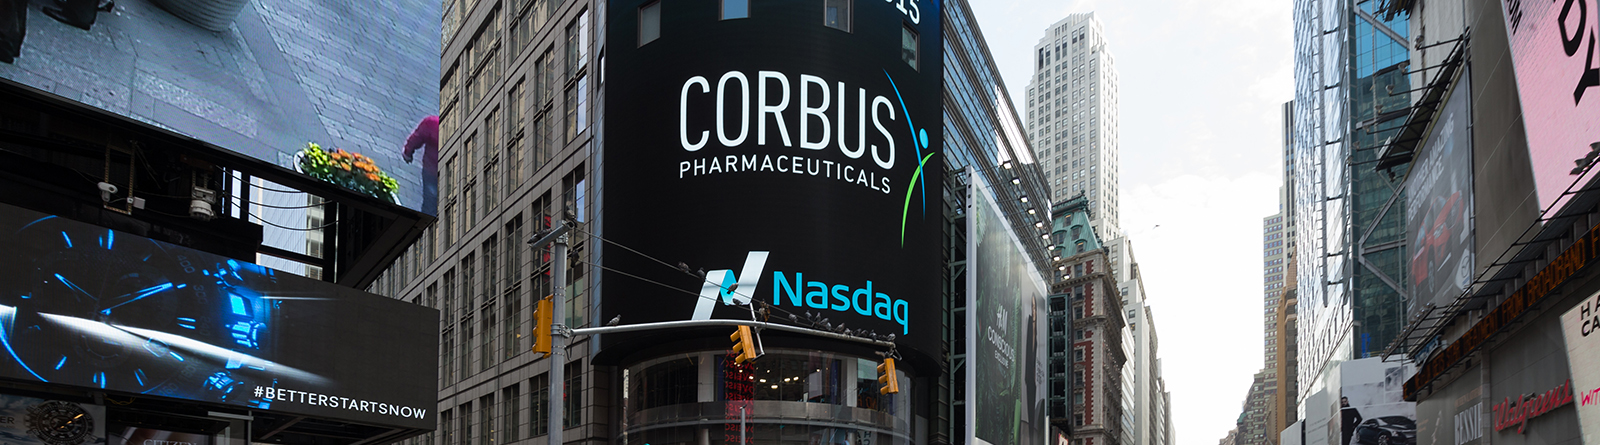 Corbus Pharmaceuticals Announces Change of Primary Endpoint in Ongoing RESOLVE-1 Phase 3 Study in Systemic Sclerosis in U.S. to ACR CRISS from mRSS Following Meeting with FDA Banner